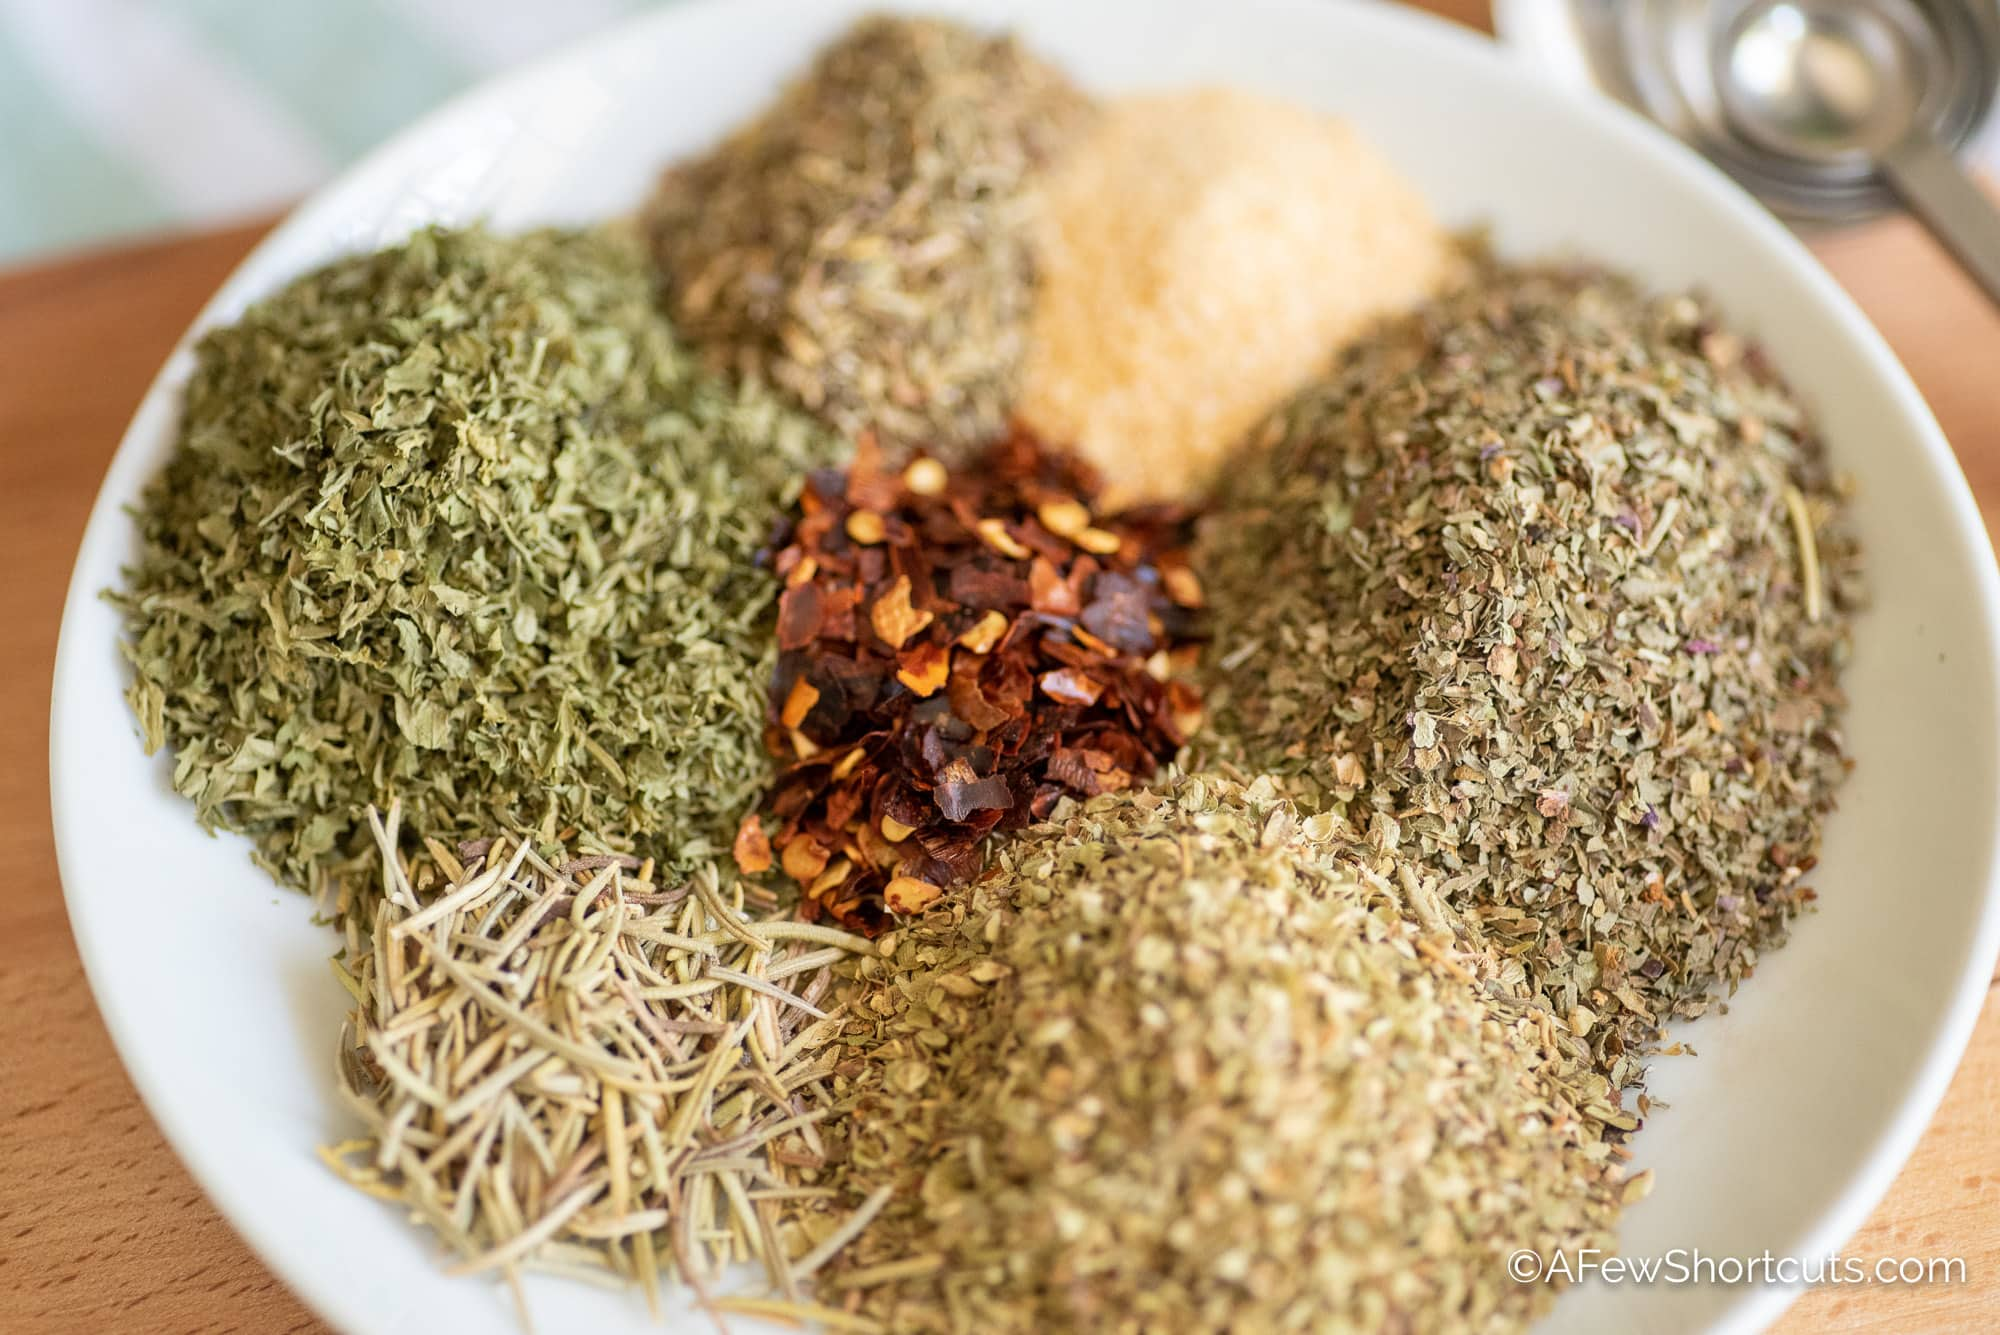 Spices for Italian seasoning on white plate.